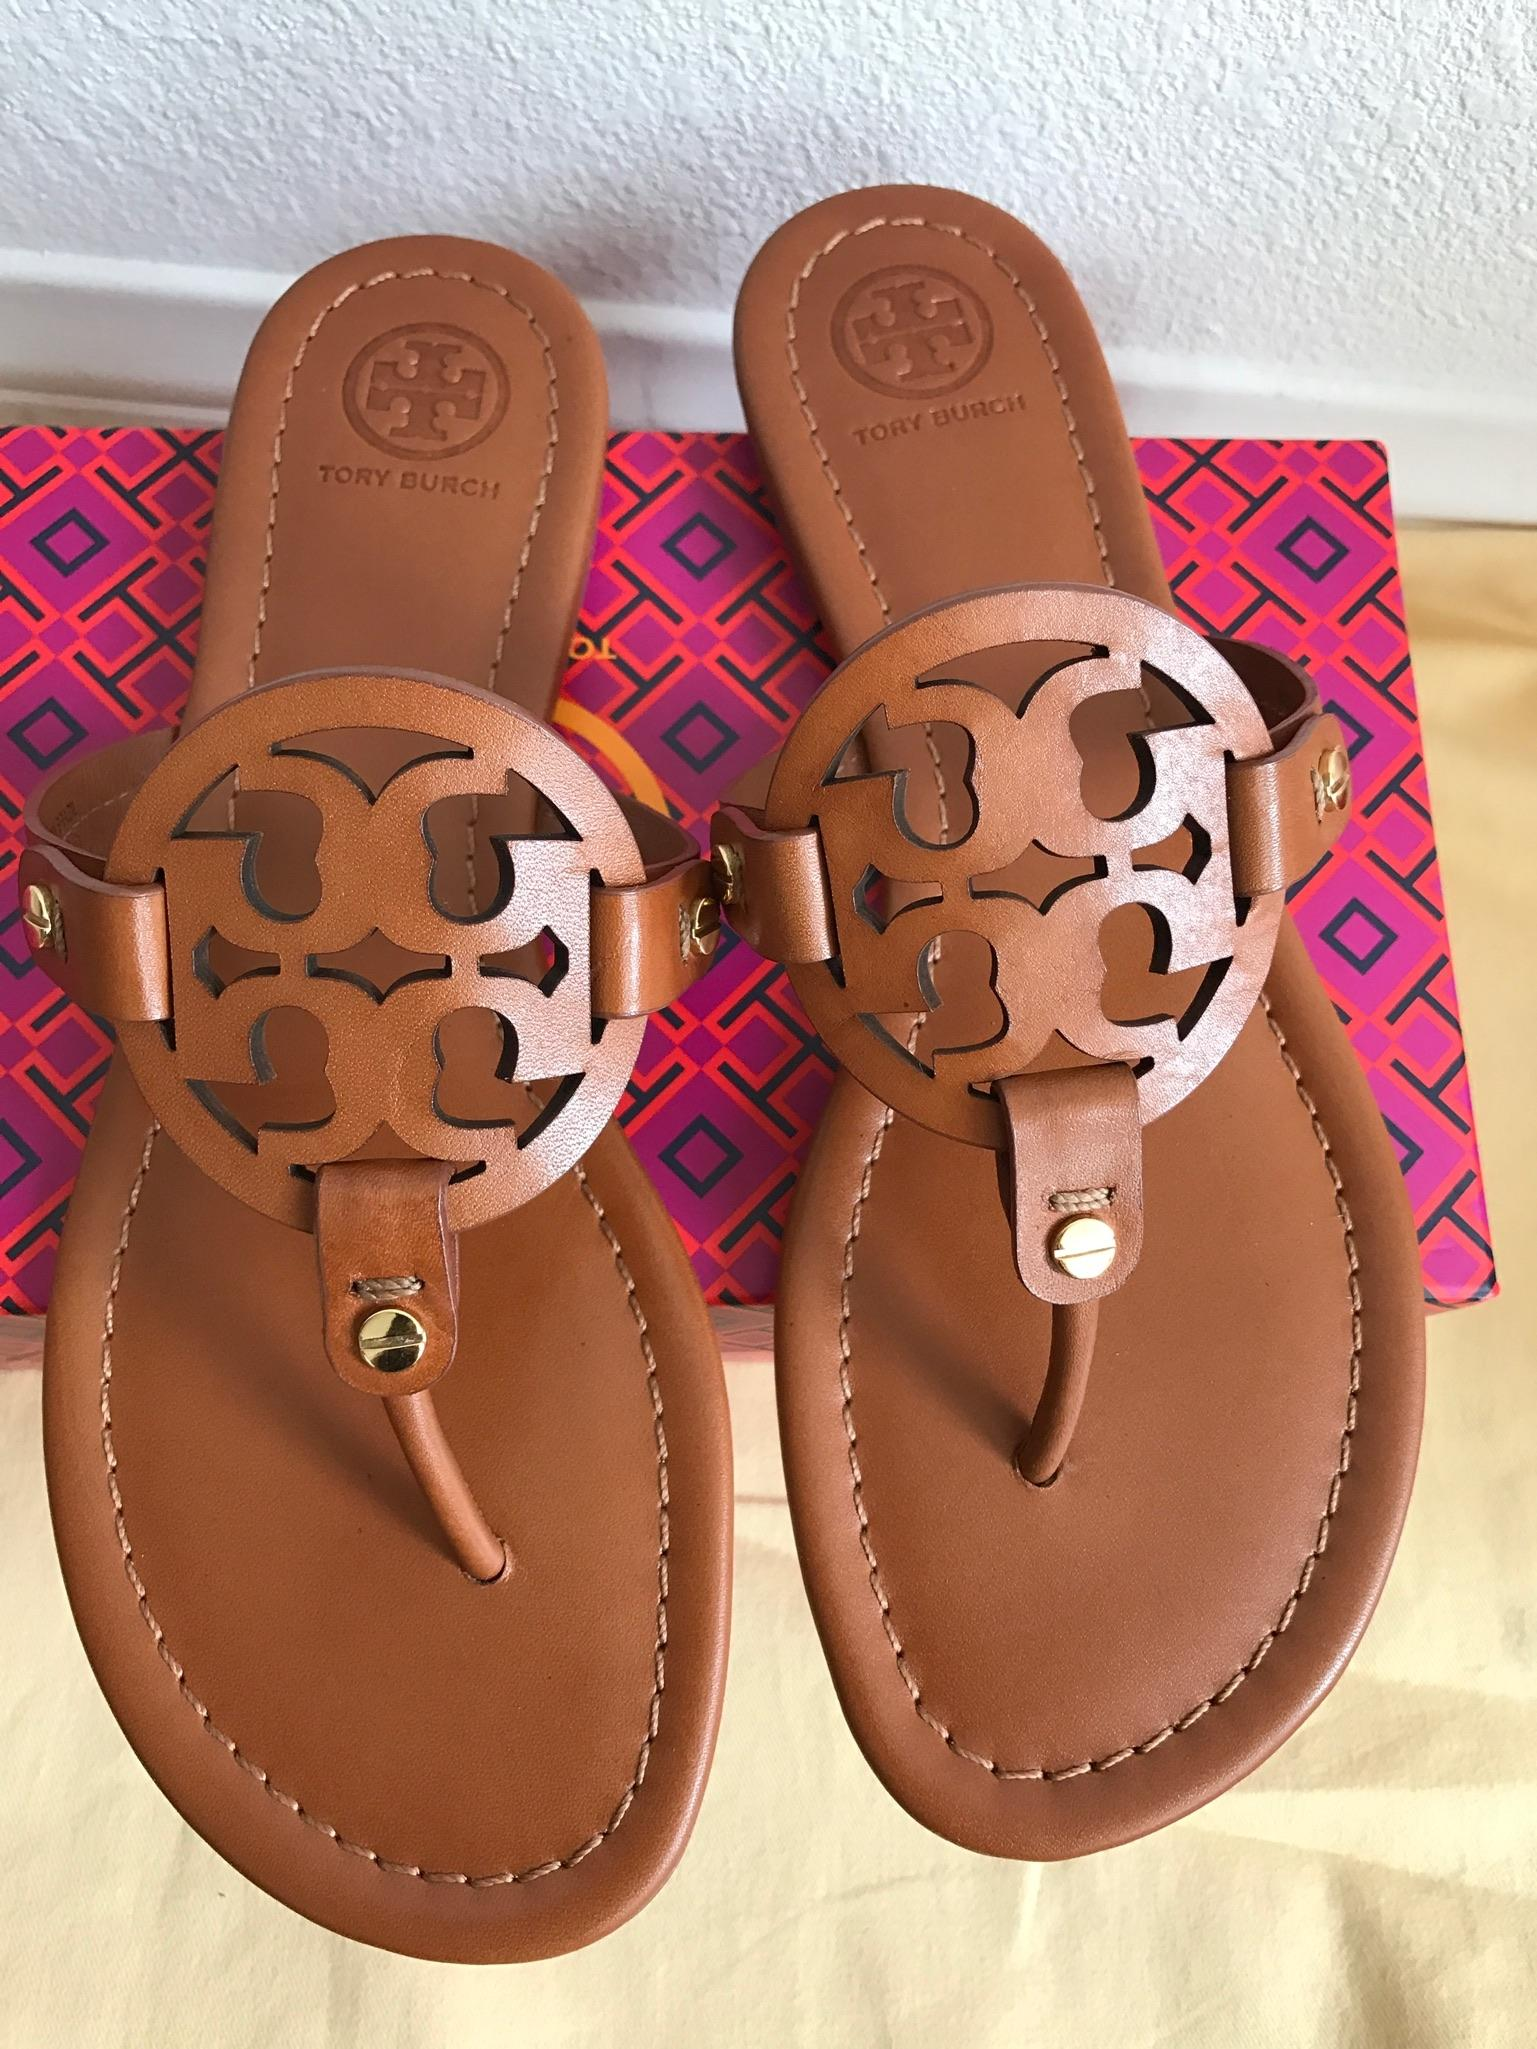 a3f6cc2f6b462 ... Tory Burch Brown 8.5m 8.5m 8.5m Miller Veg Leather Sandals Size US 8.5  ...